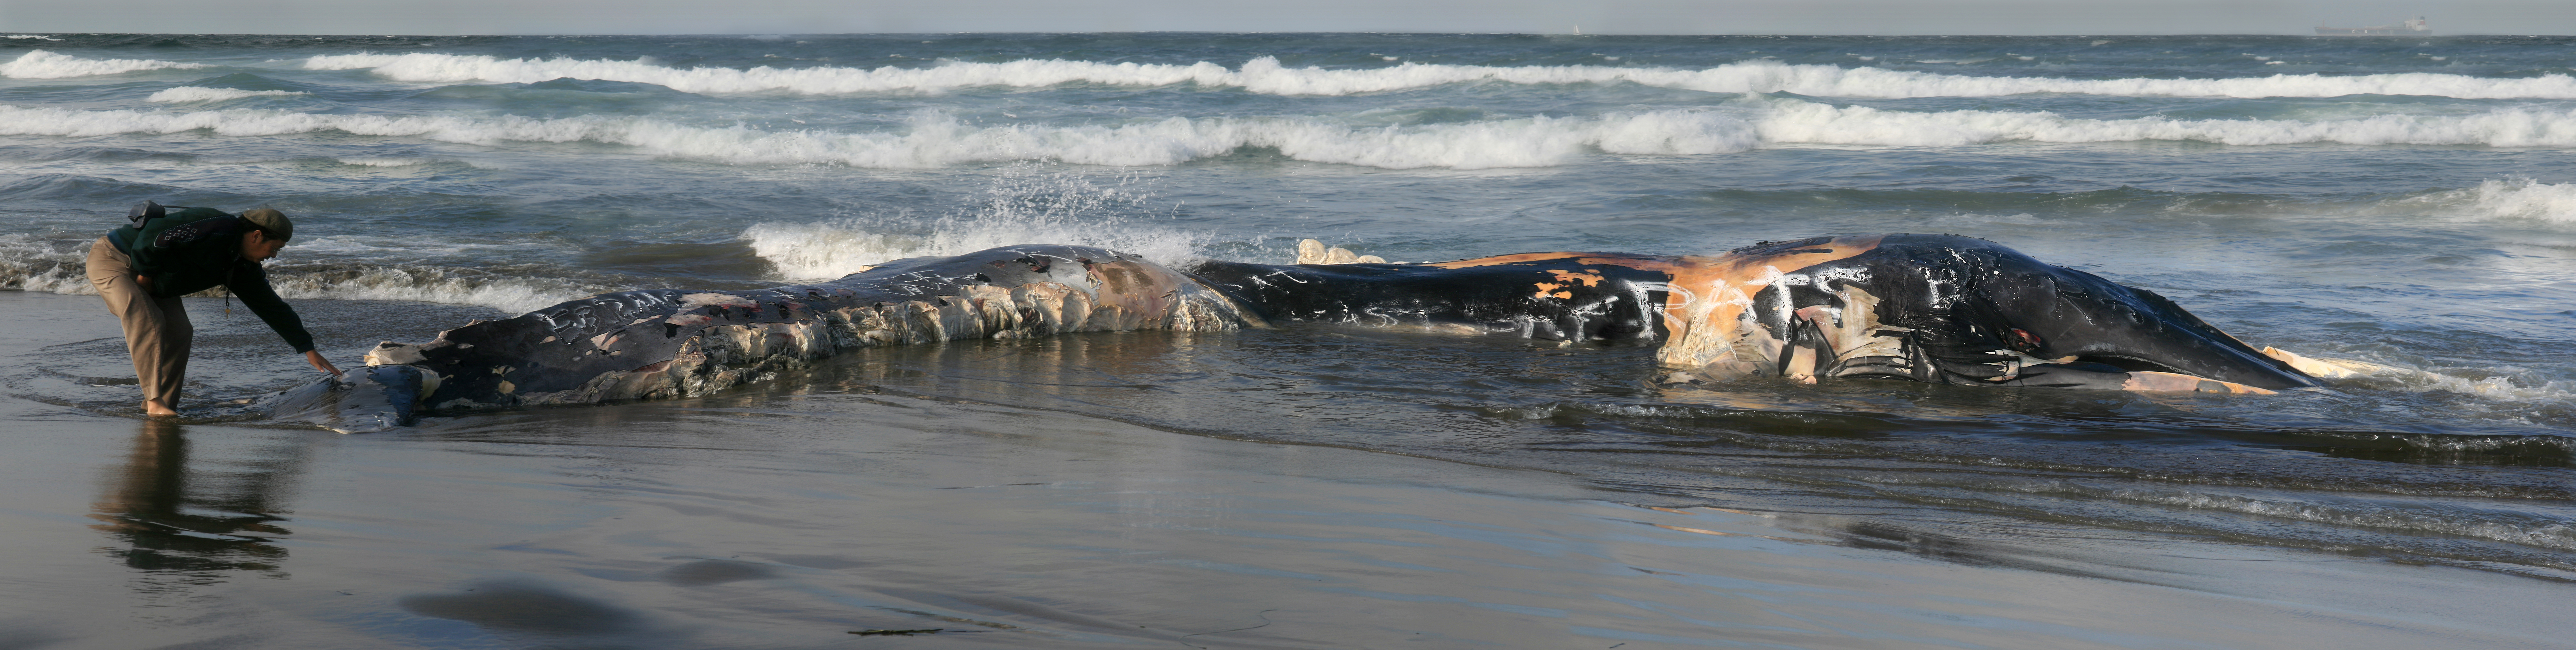 A_beachcomber_is_touching_a_dead_whale_washed_ashore_at_Ocean_beach_edit_1